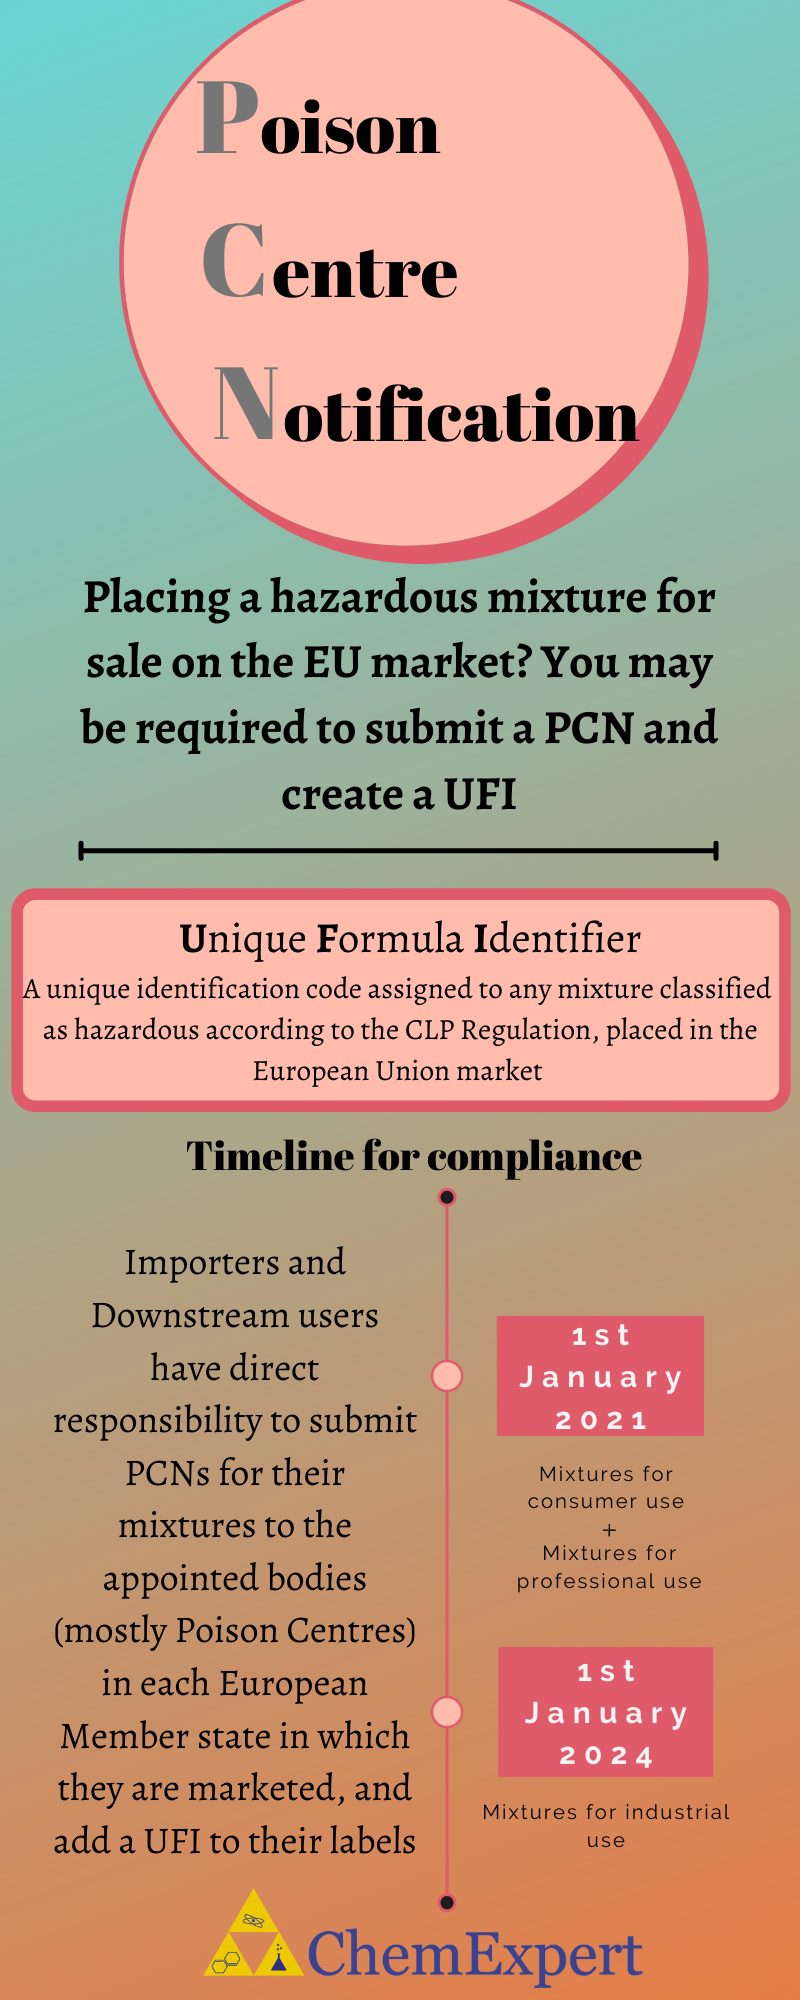 Poison Centre Notification - Infographic